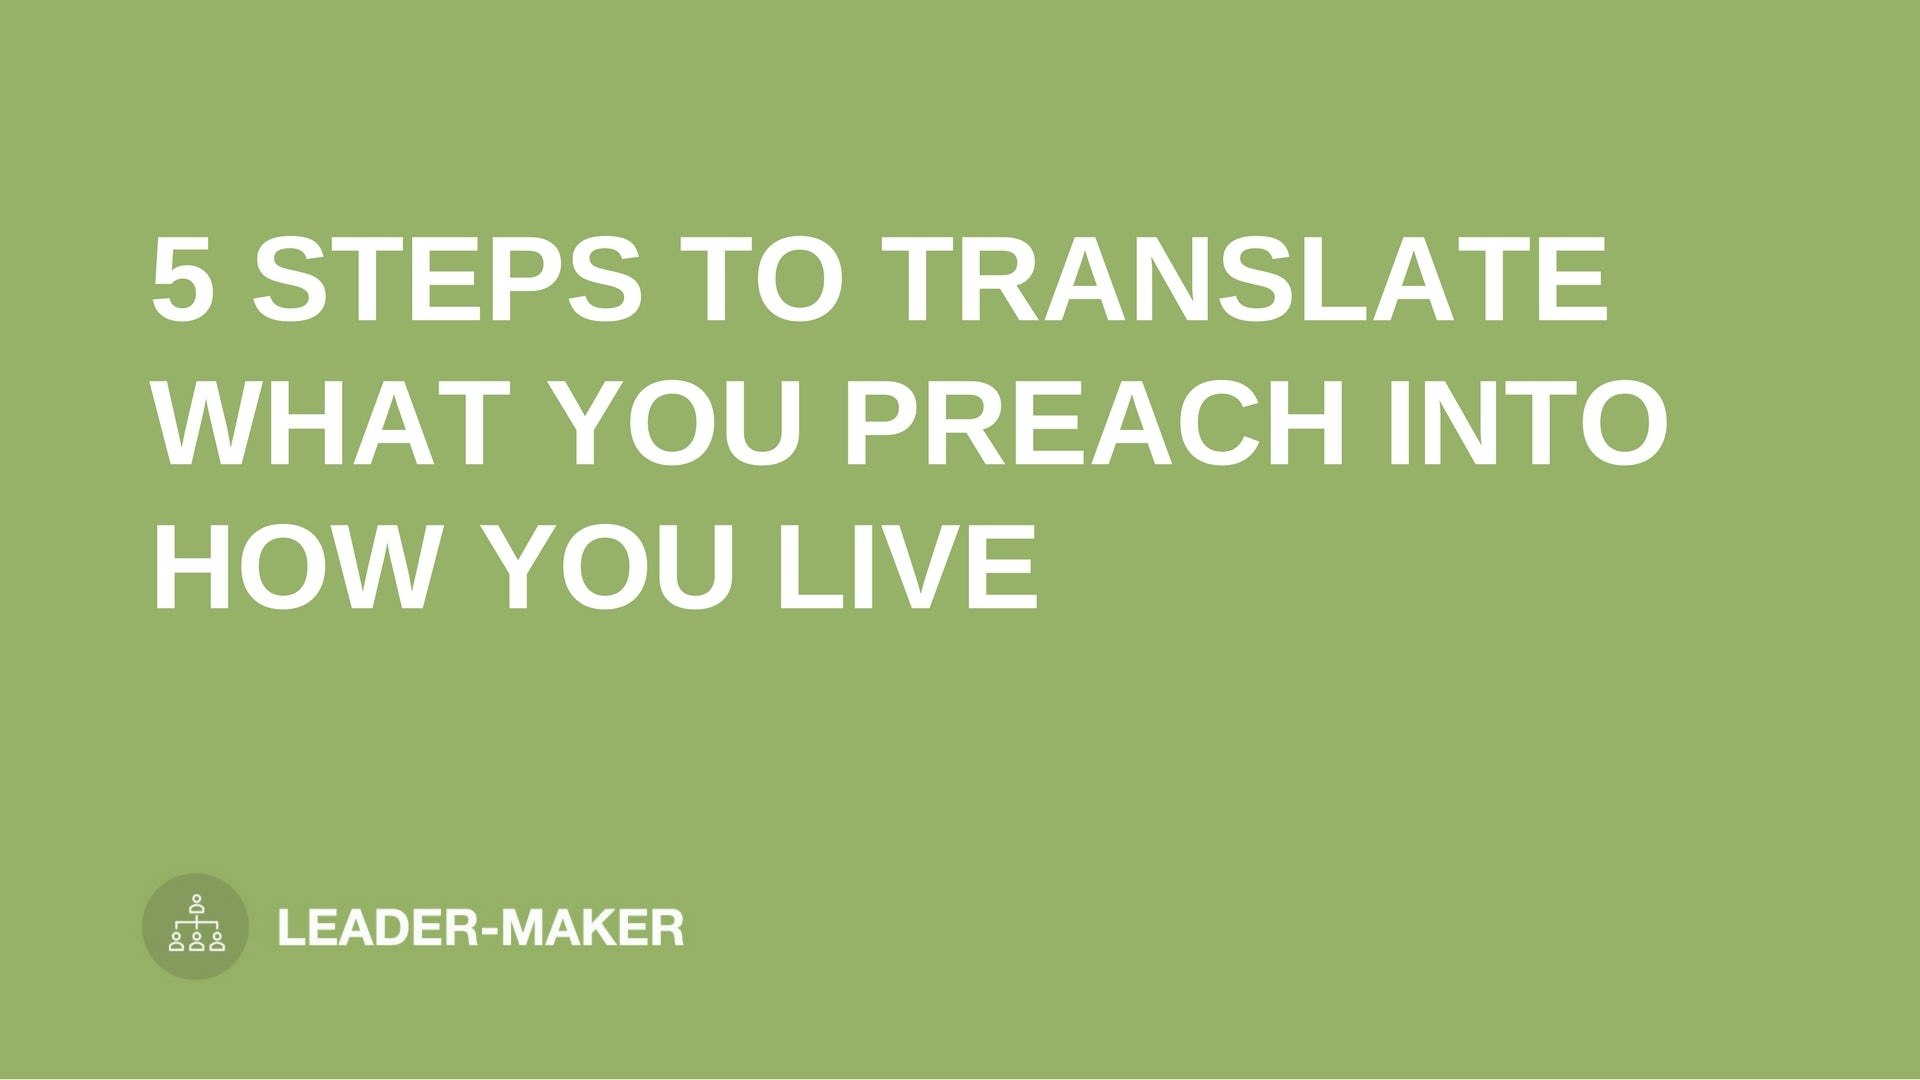 """text """"5 STEPS TO TRANSLATE WHAT YOU PREACH INTO HOW YOU LIVE"""" on green background leaders.church"""